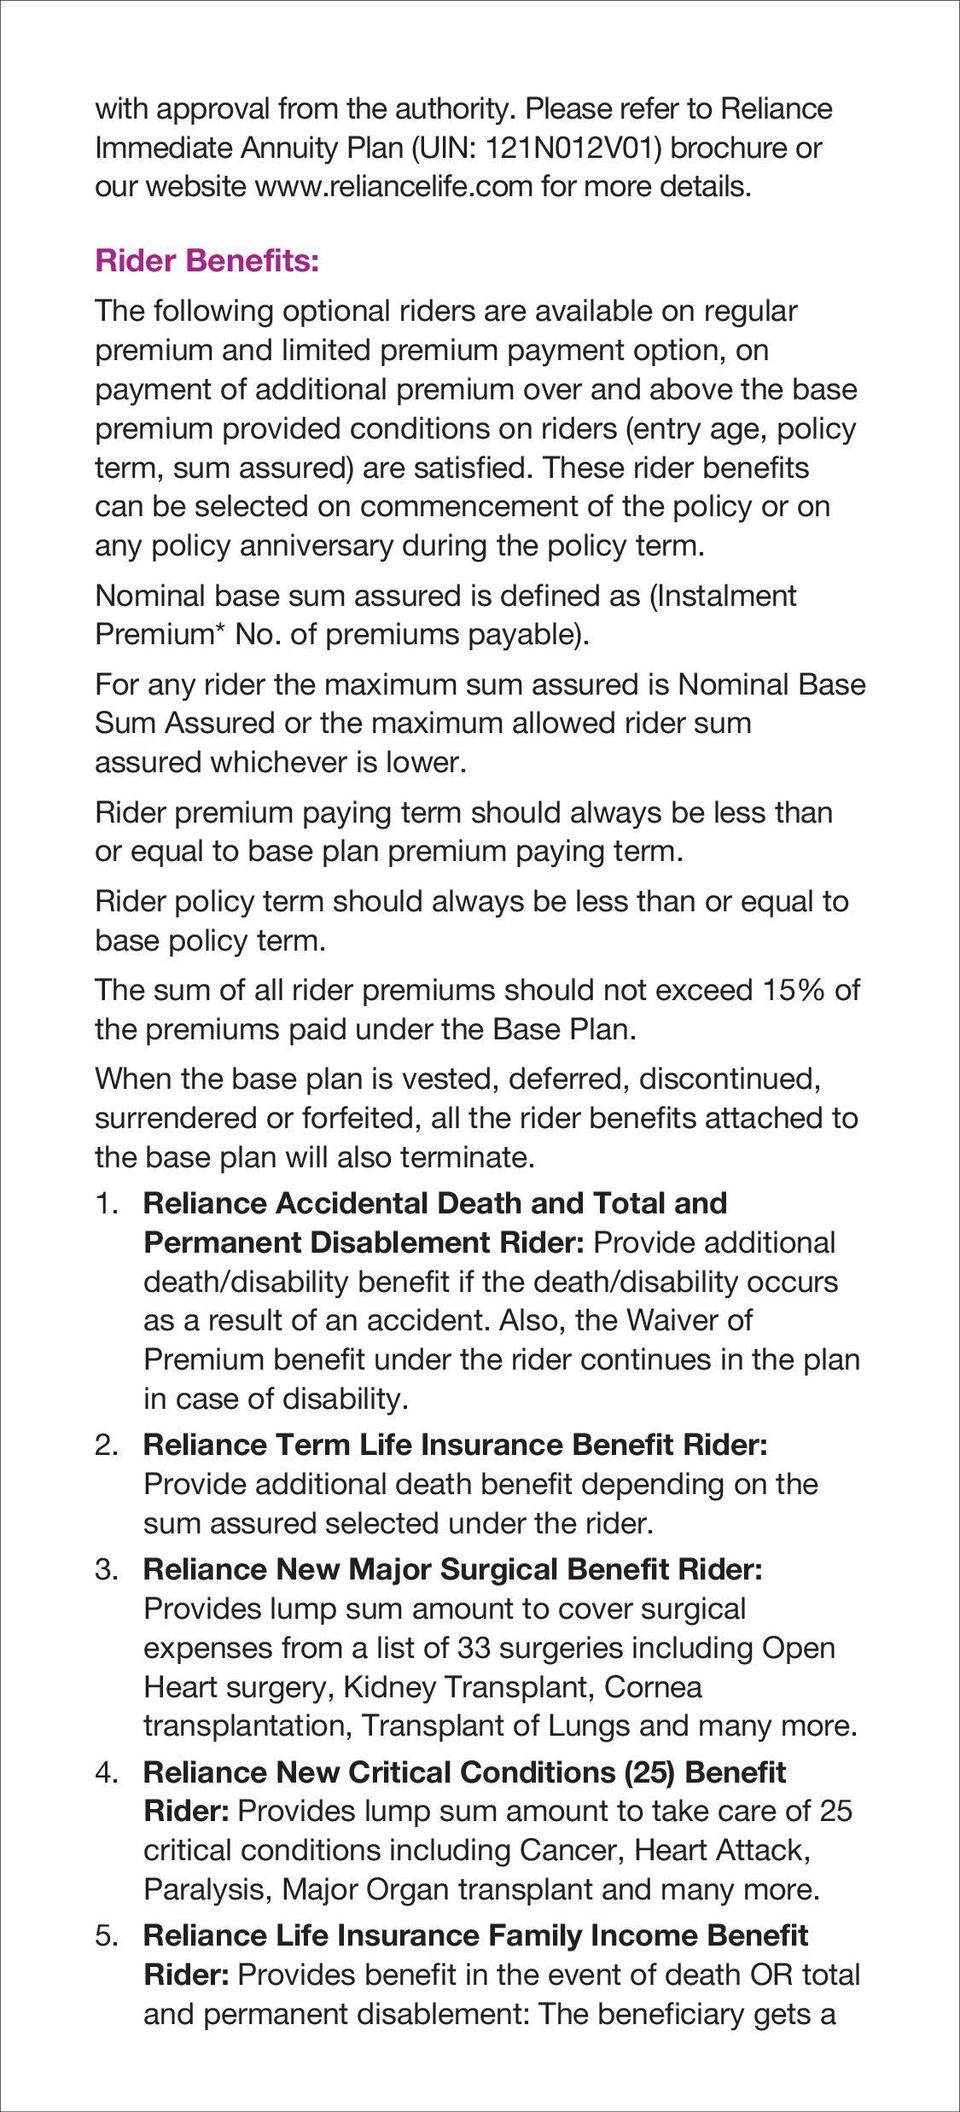 on riders (entry age, policy term, sum assured) are satisfied. These rider benefits can be selected on commencement of the policy or on any policy anniversary during the policy term.